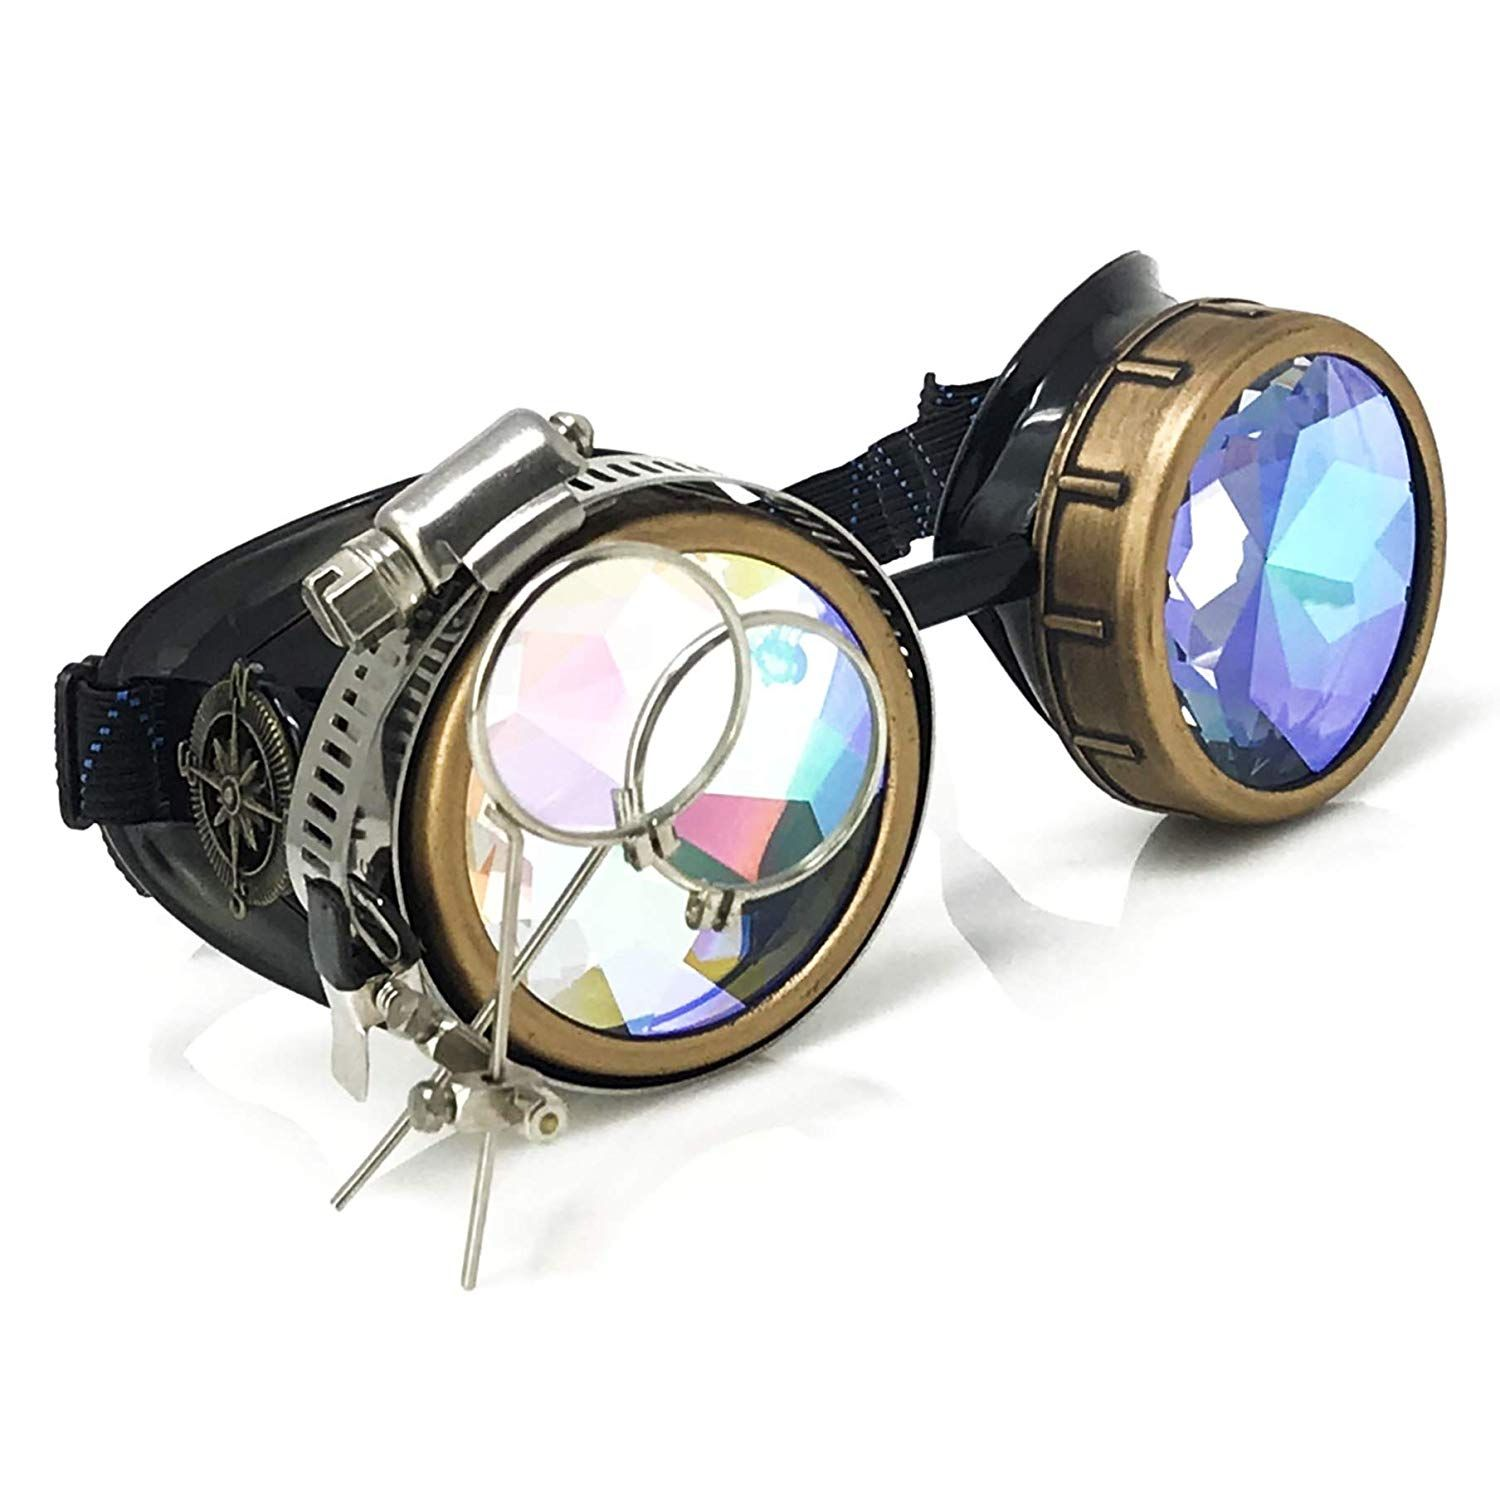 Amazon Com Enjoy Your Steampunk Victorian Style Goggles With Compass Design Azure Blue Lenses Ocular Loupe Steampunk Goggles Victorian Fashion Rave Glasses